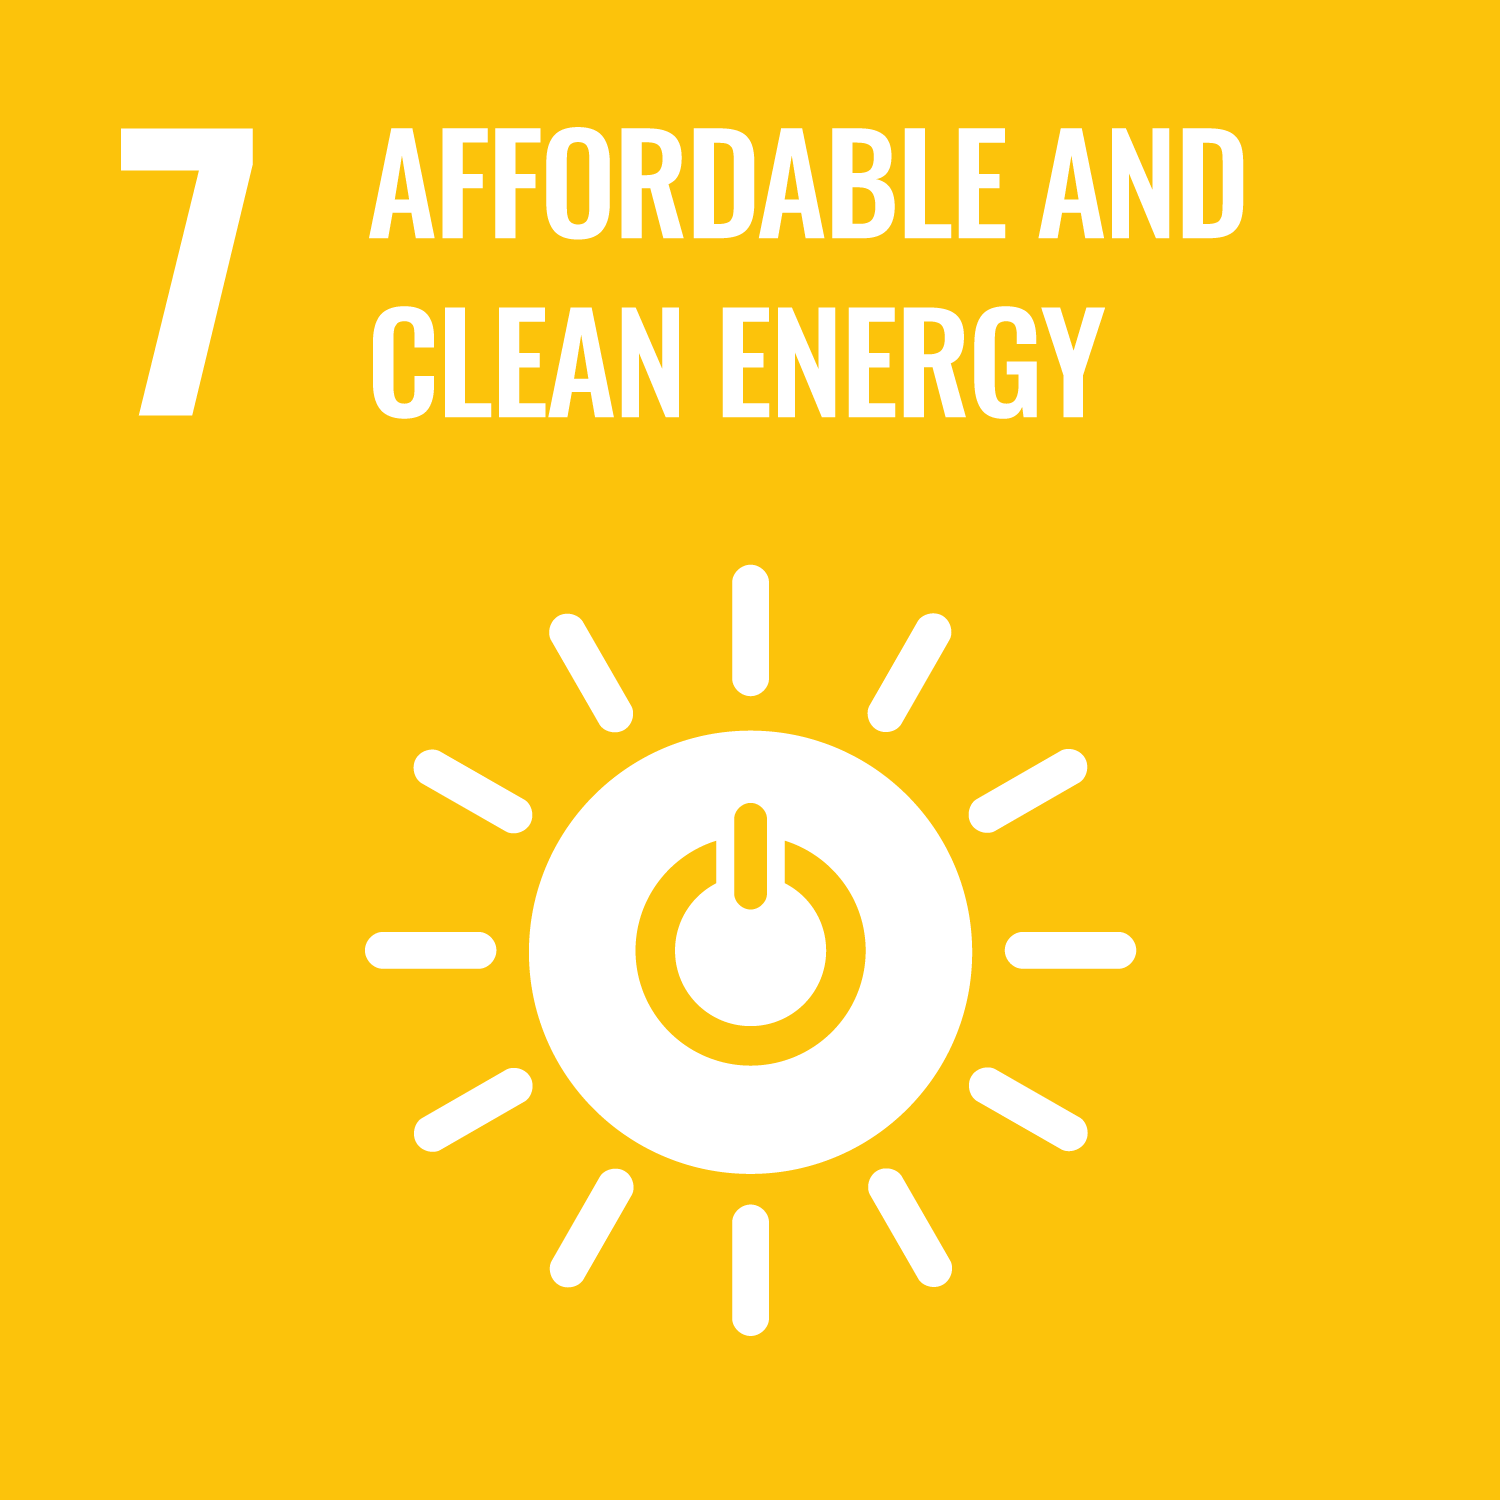 07. affordable & clean energy